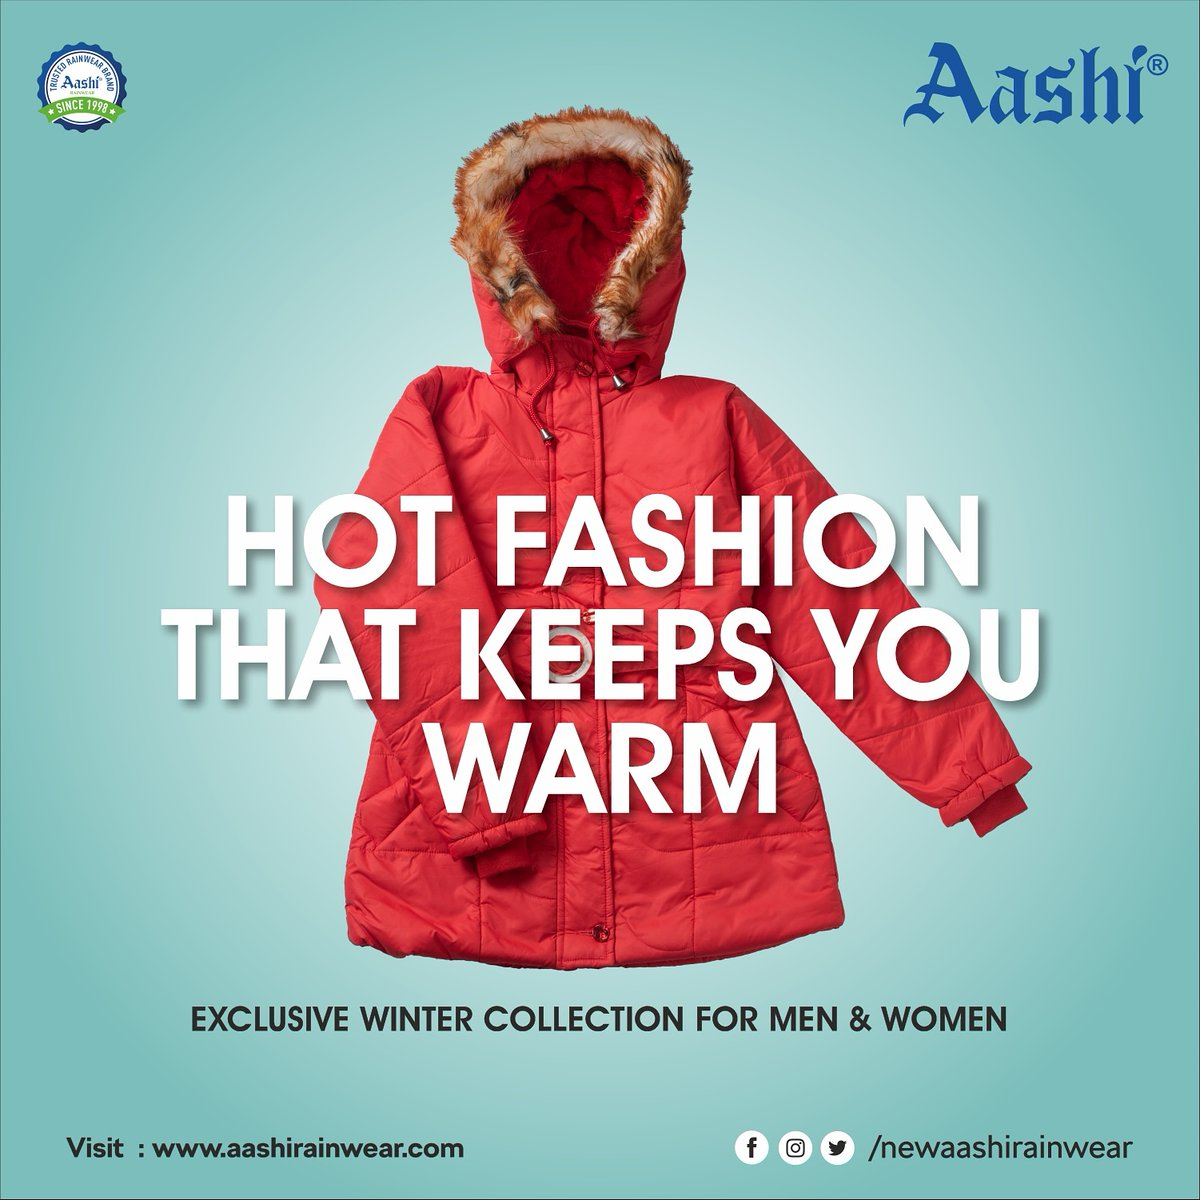 Never go out of style this #winter  #comfort #winterwear #style #fashion #chills #cooloutfits #hoodies #Aashi #winterjacket #staystylish #winterlover #winterfashion #outfits #winterwalks #Wednesdaymorning #newaashirainwear #VocalForLocal Please visit